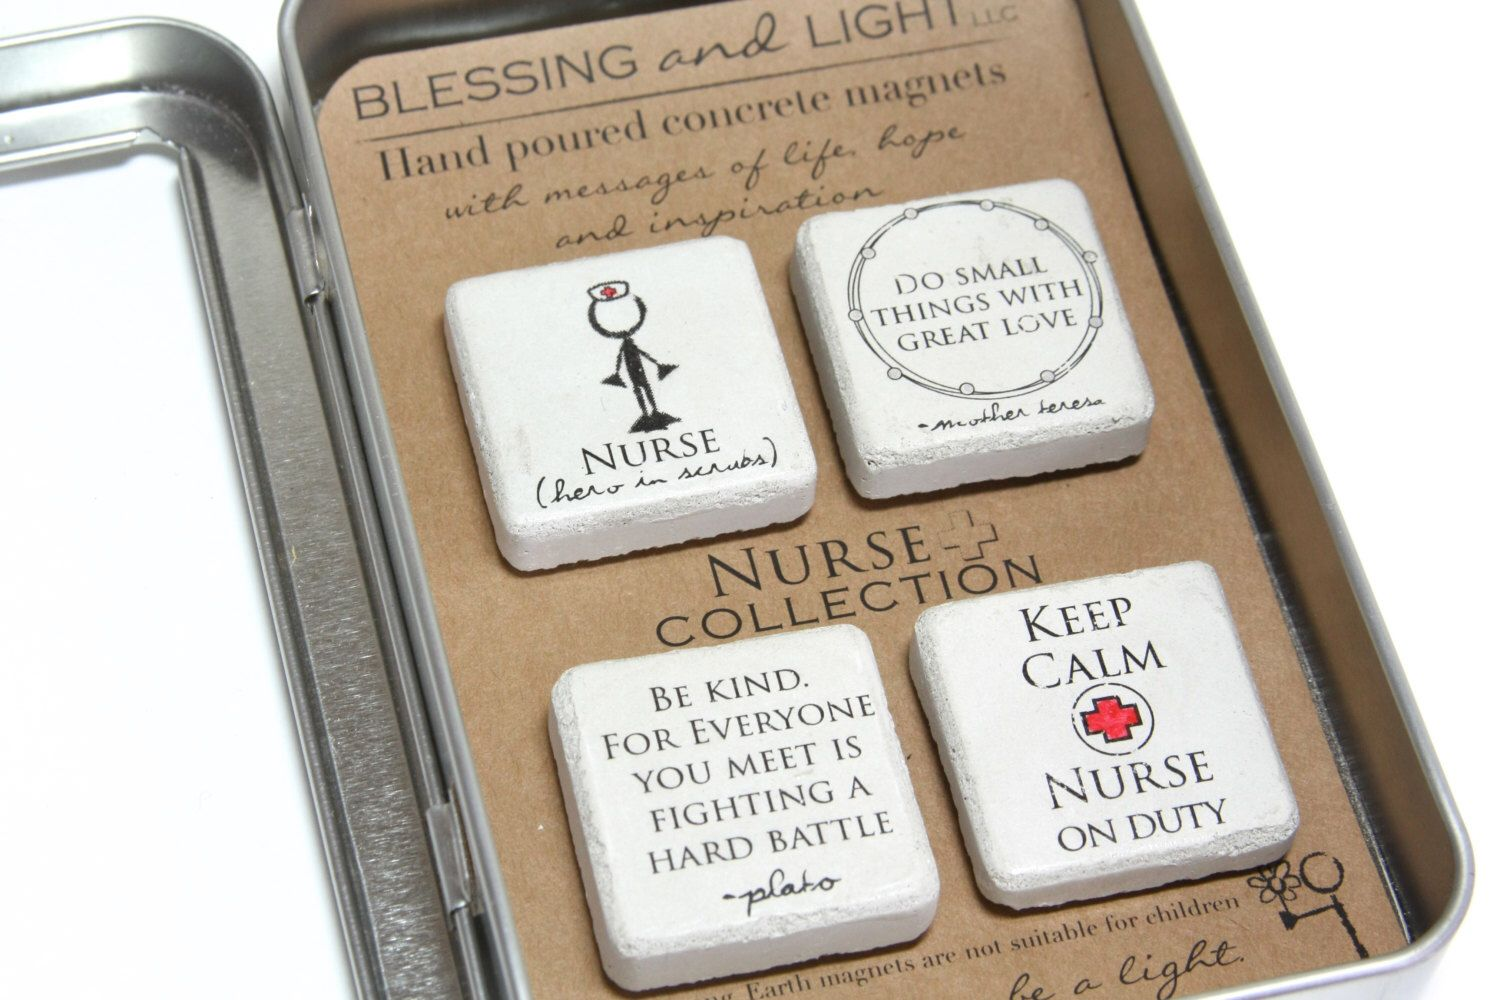 FREE SHIPPING. Nurse Gift. Rustic Refrigerator Magnets.1.25 x 1.25 Gift Tin with Ribbon. Hand painted Magnets. Nurse Appreciation Graduation by blessingandlight on Etsy https://www.etsy.com/listing/224104825/free-shipping-nurse-gift-rustic